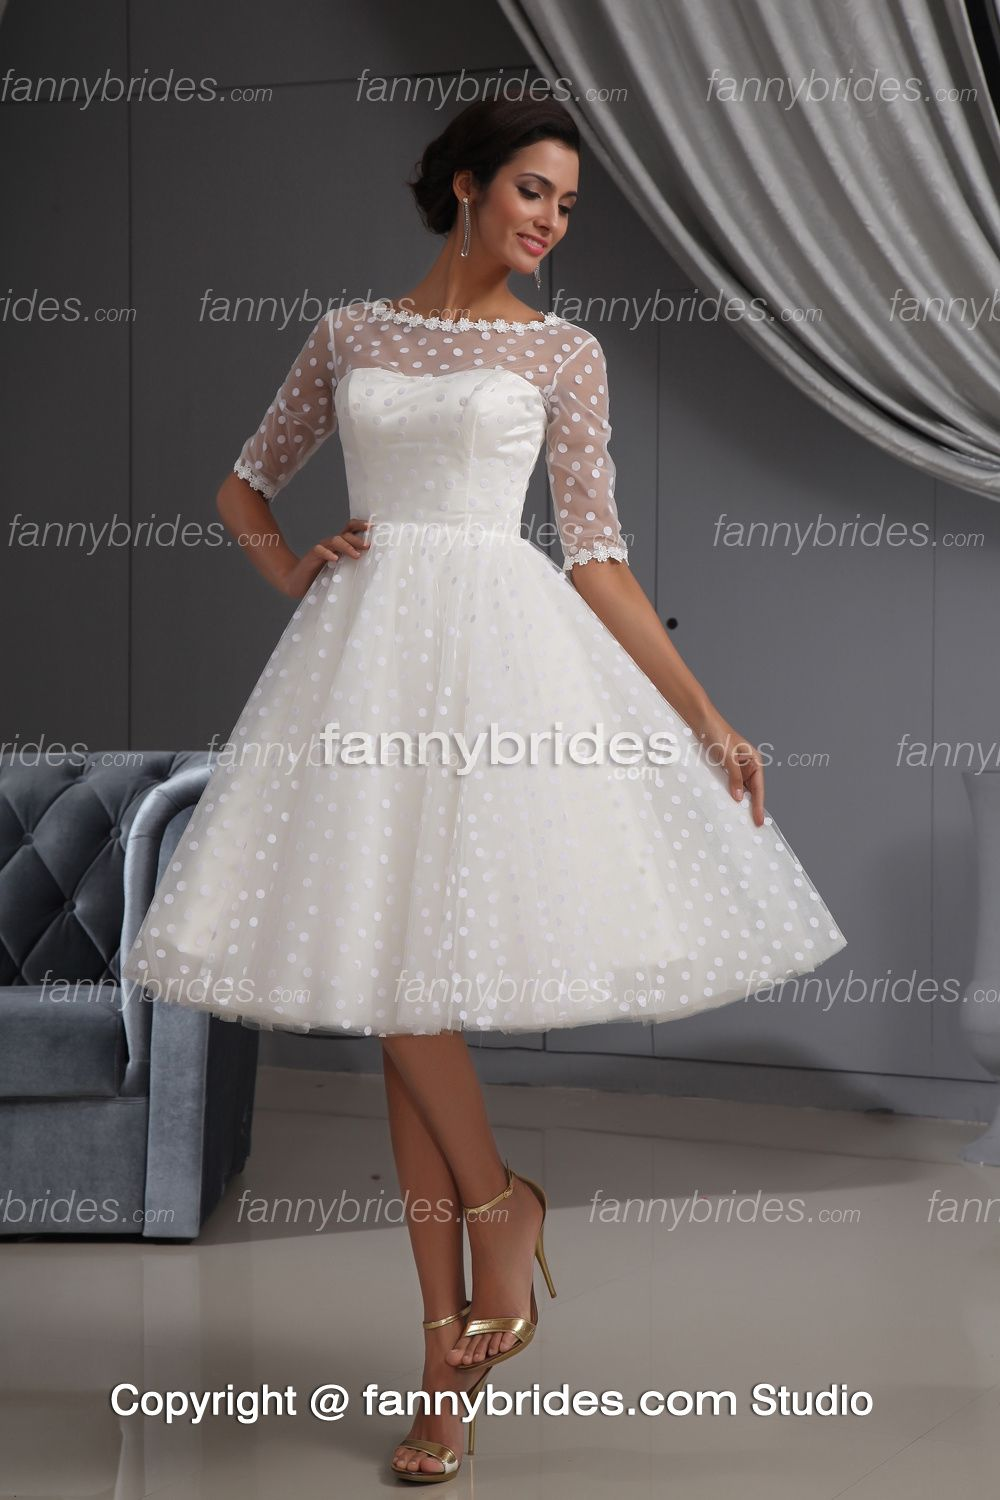 Petite half sleeves summer lace beach wedding gown fannybrides